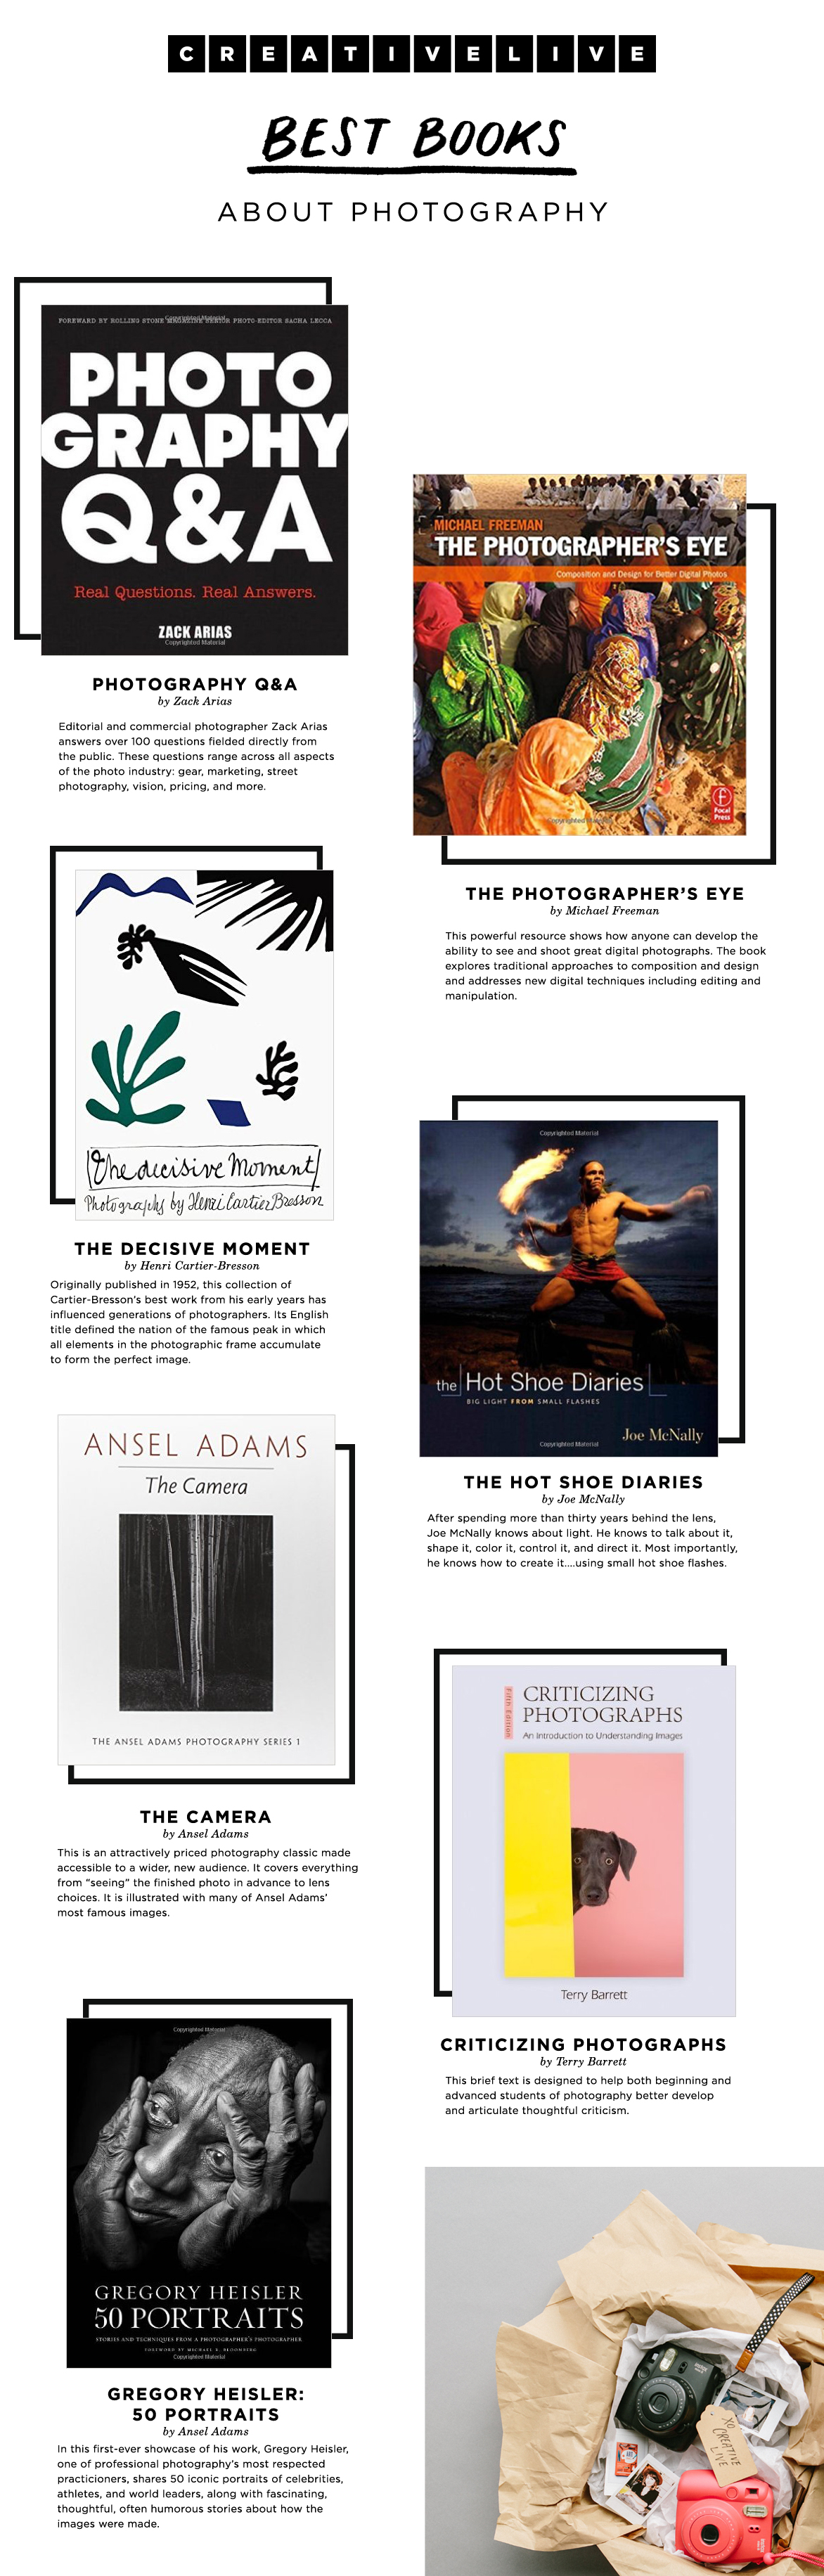 Looking for a gift for a photographer that won't break the bank? Check out these books that are meaningful and beautiful.